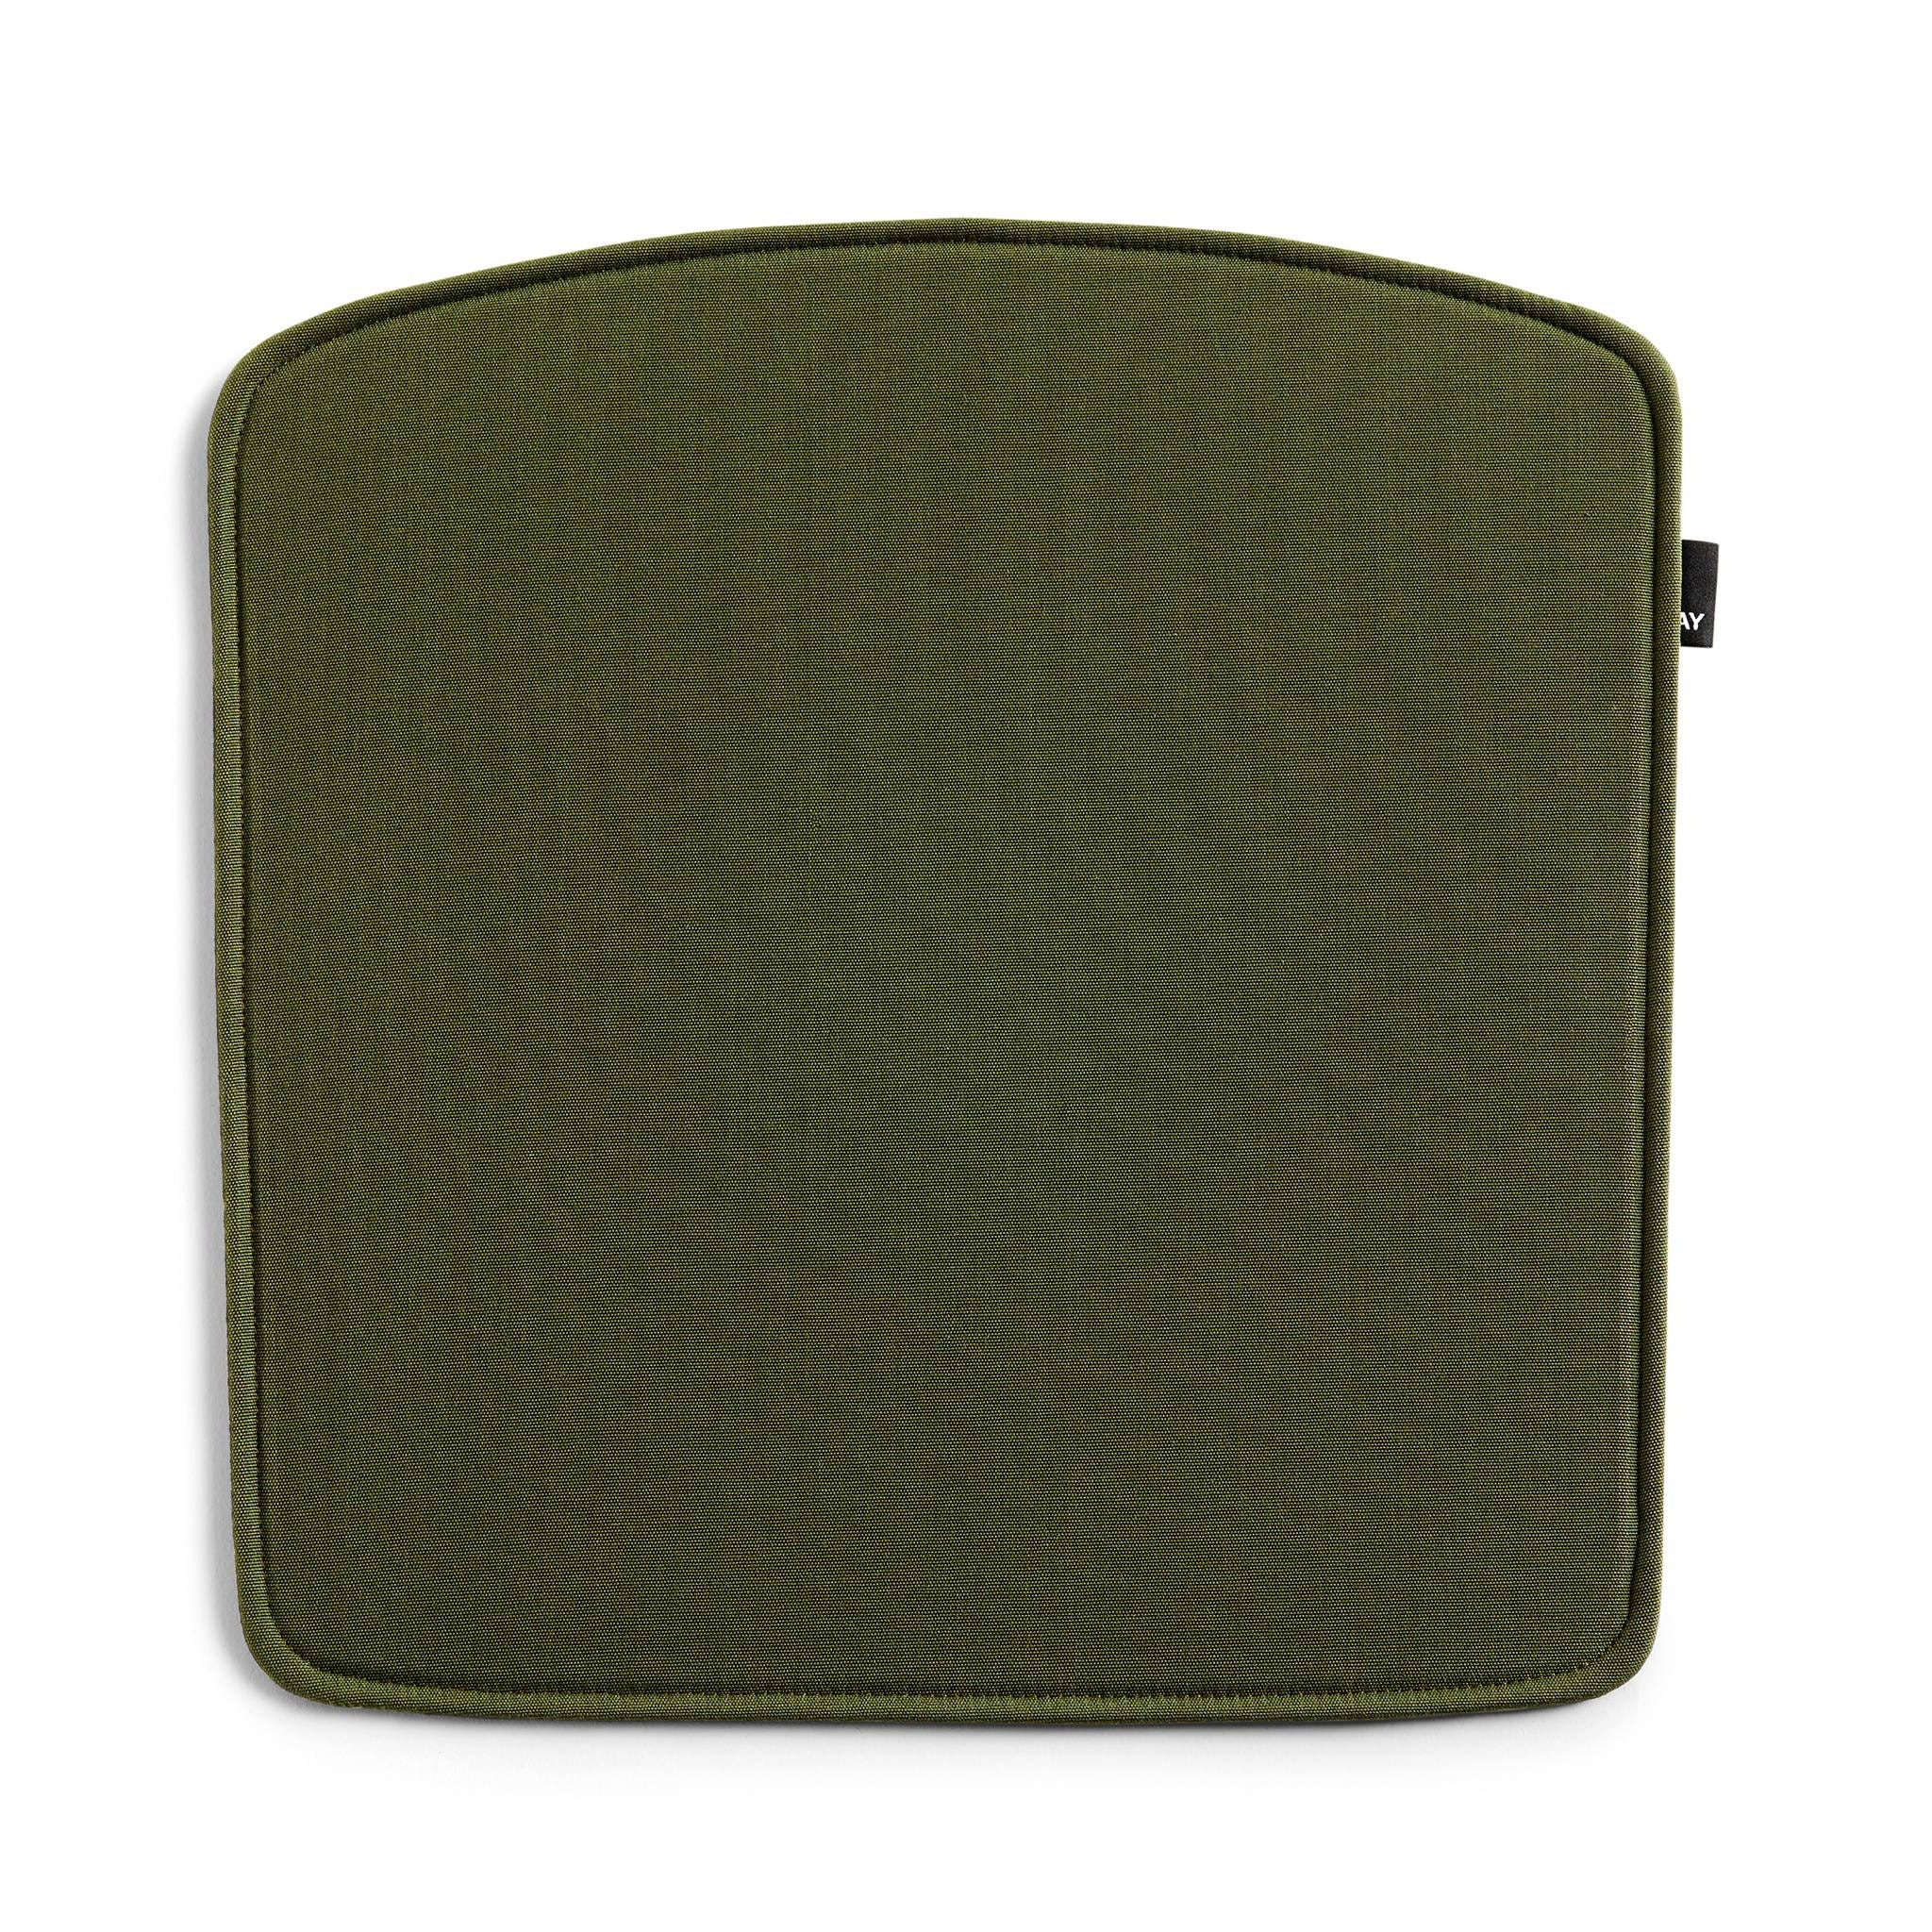 Élémentaire Outdoor Seat Pad by Hay